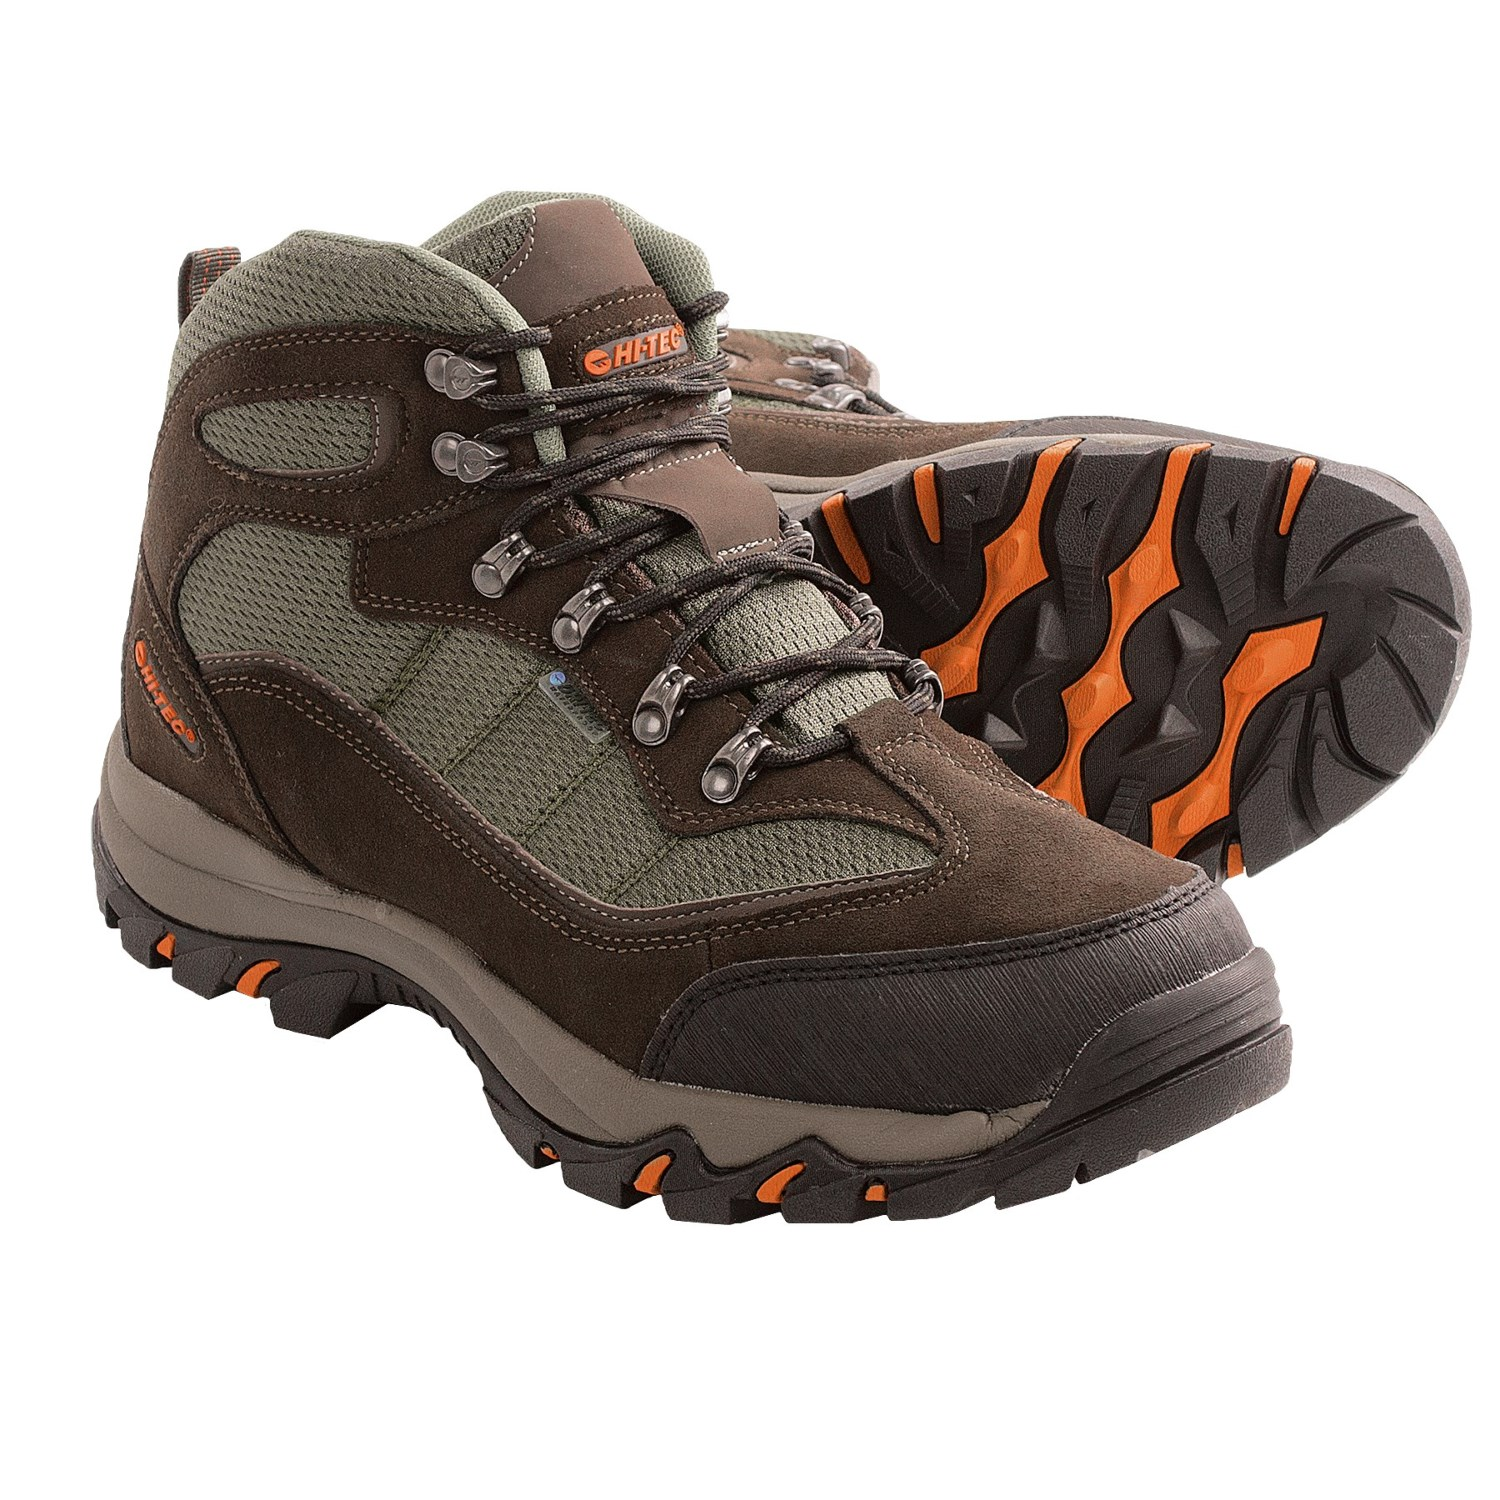 Hi-Tec Skamania Mid Hiking Boots (For Men) - Save 56%